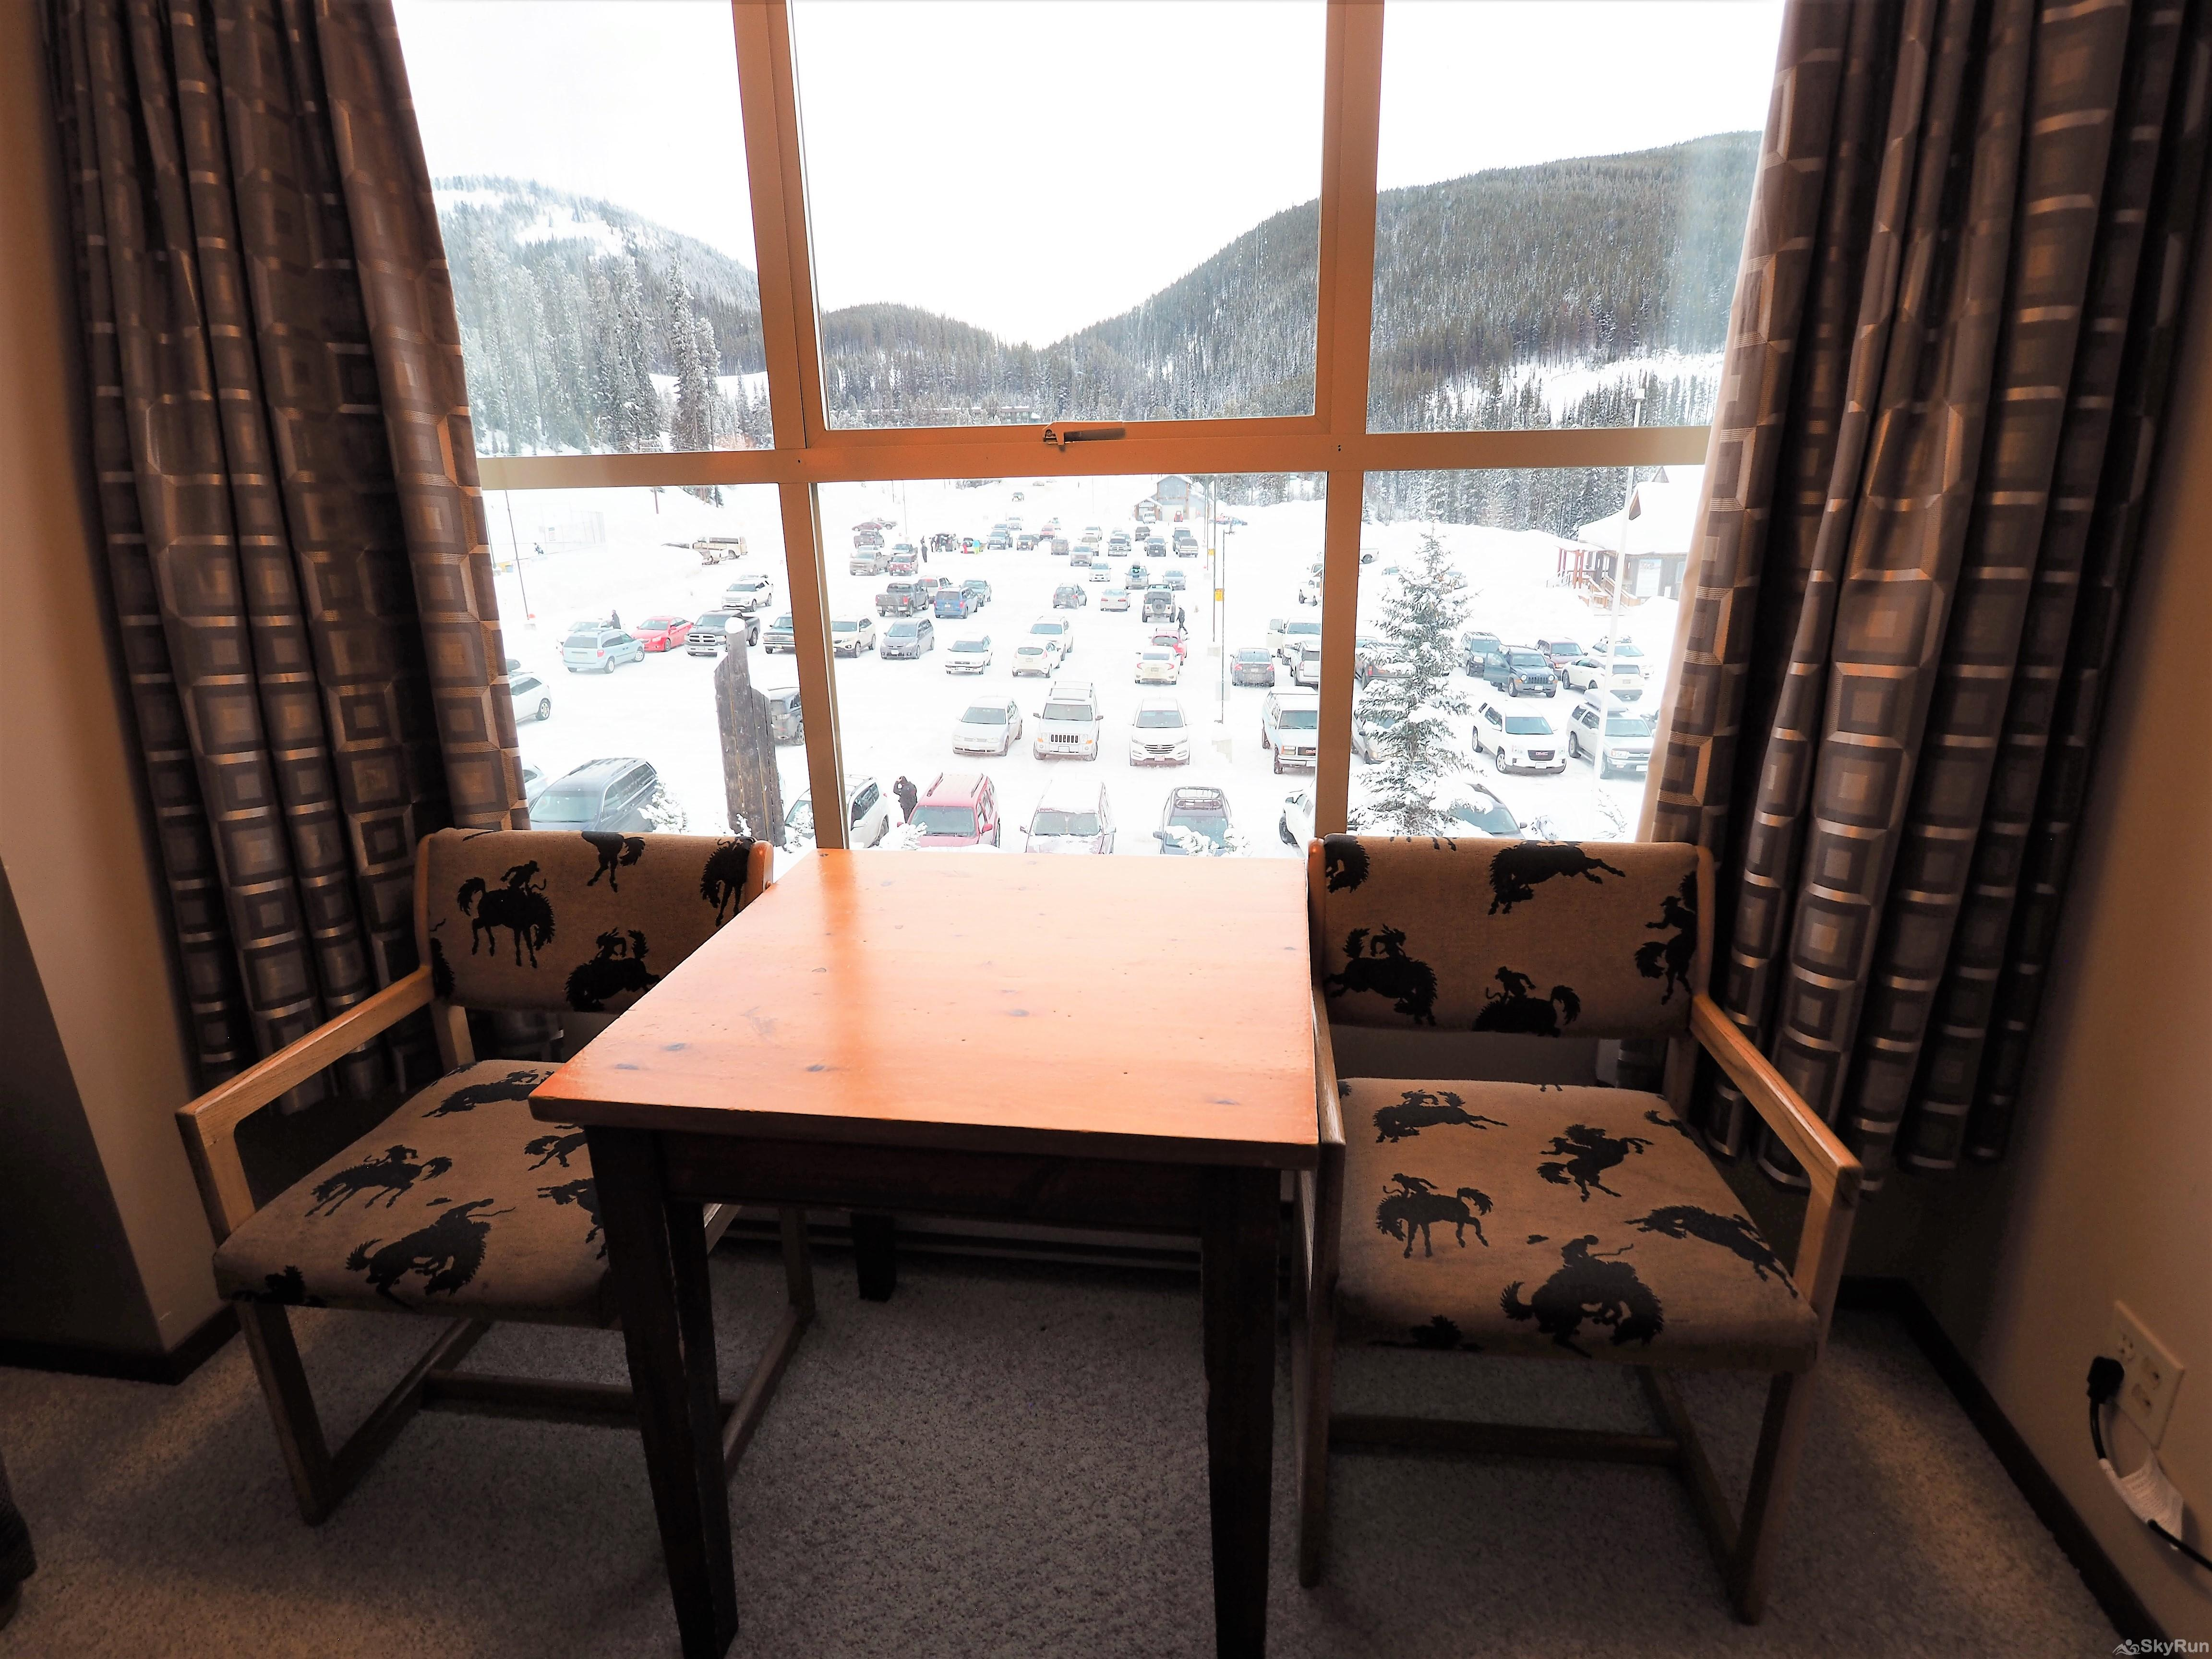 Apex Mountain Inn Standard Room 305 View from the Room